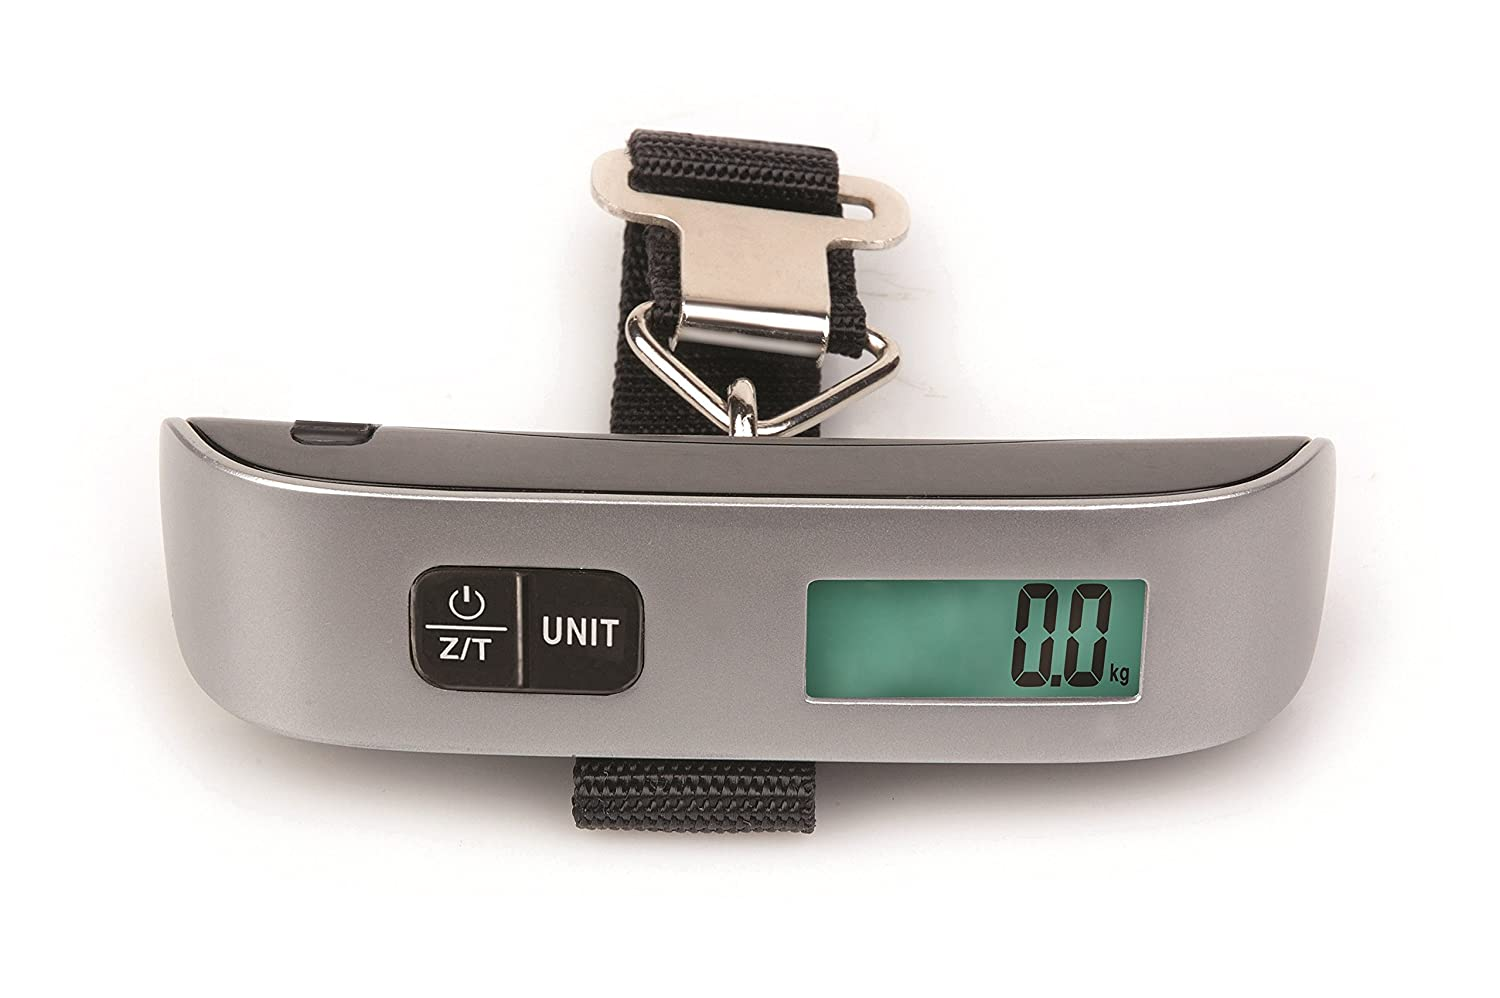 Deltron Essentials-Luggage Weight Scale The #1 Must Have Luggage Scale For The Frequent Flyer and Travelers.